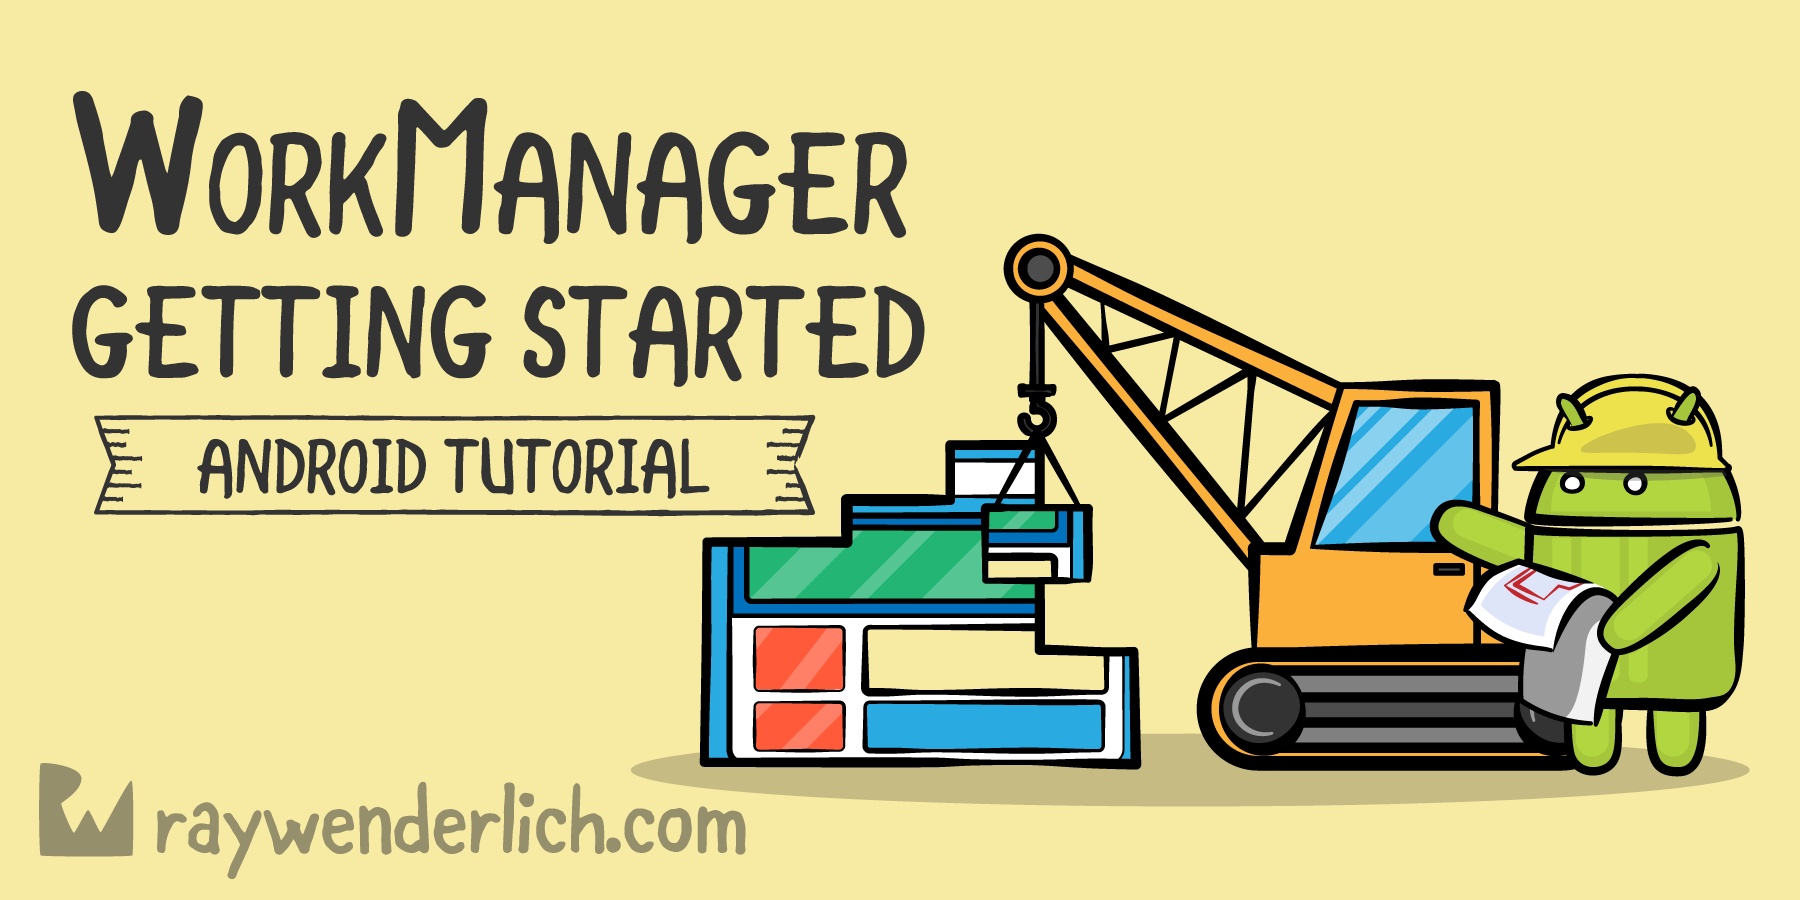 WorkManager Tutorial for Android: Getting Started | raywenderlich com